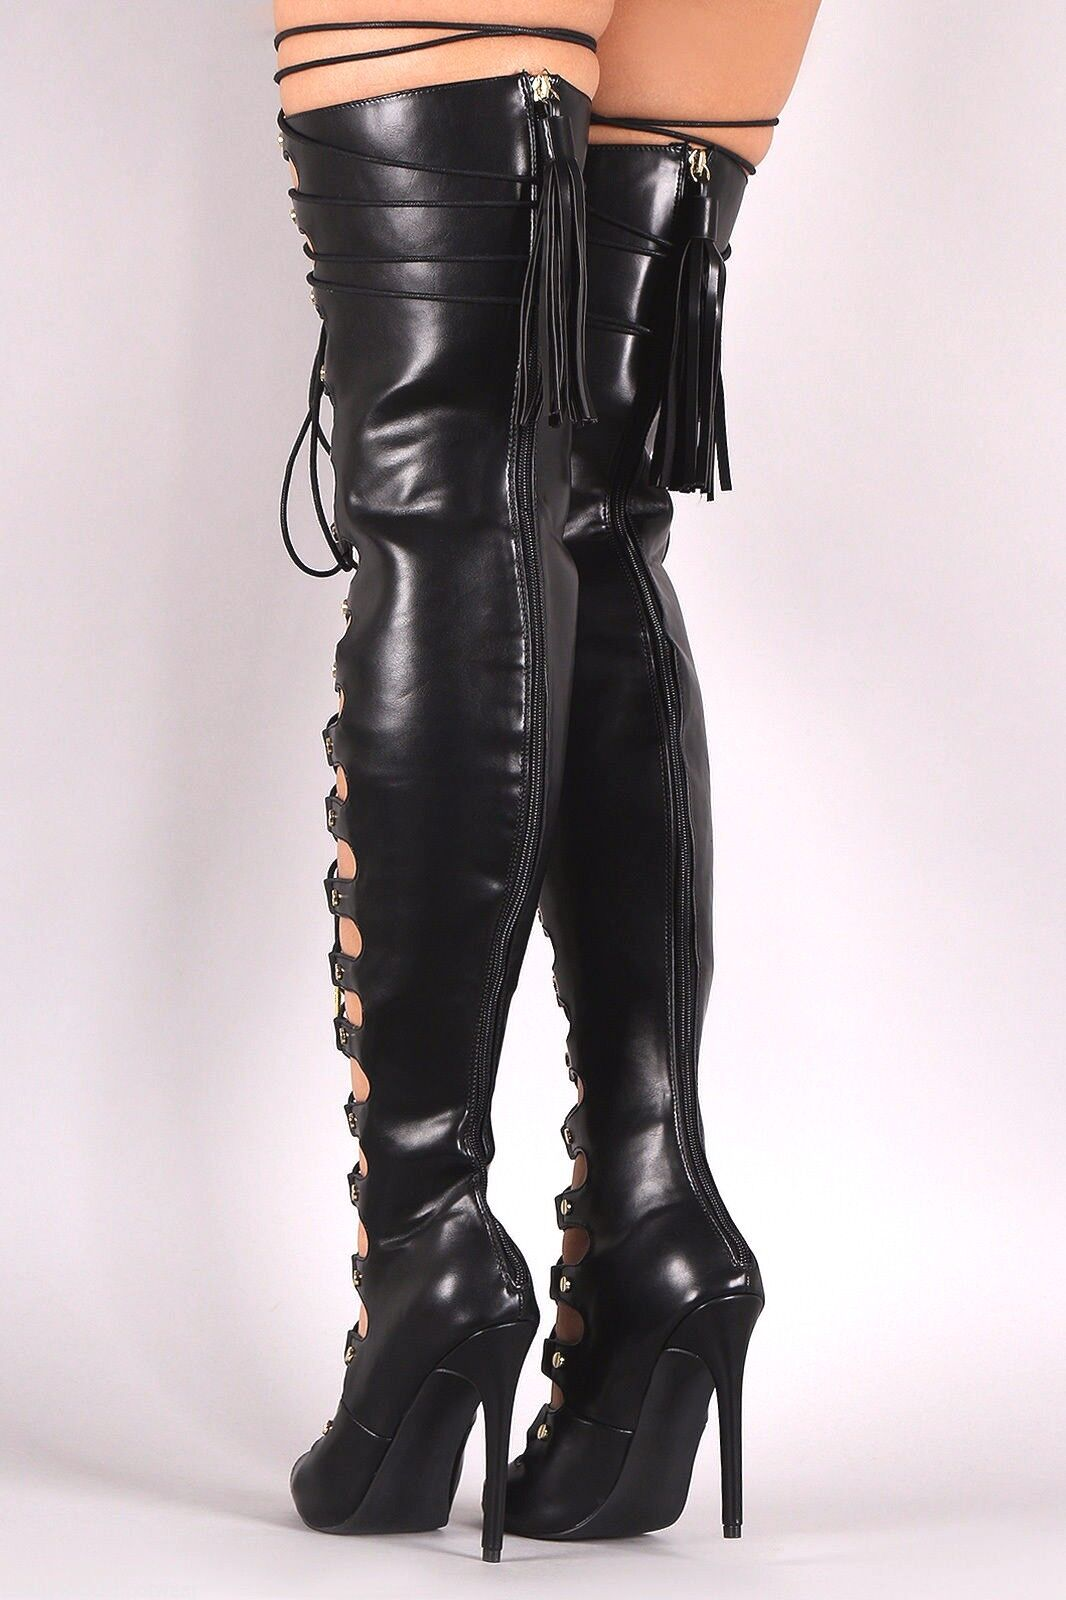 Nelly Bernal Maneater Black Black Black Adjustable Lace Up Thigh High Boot 4.75  Heel 6-11 88d972